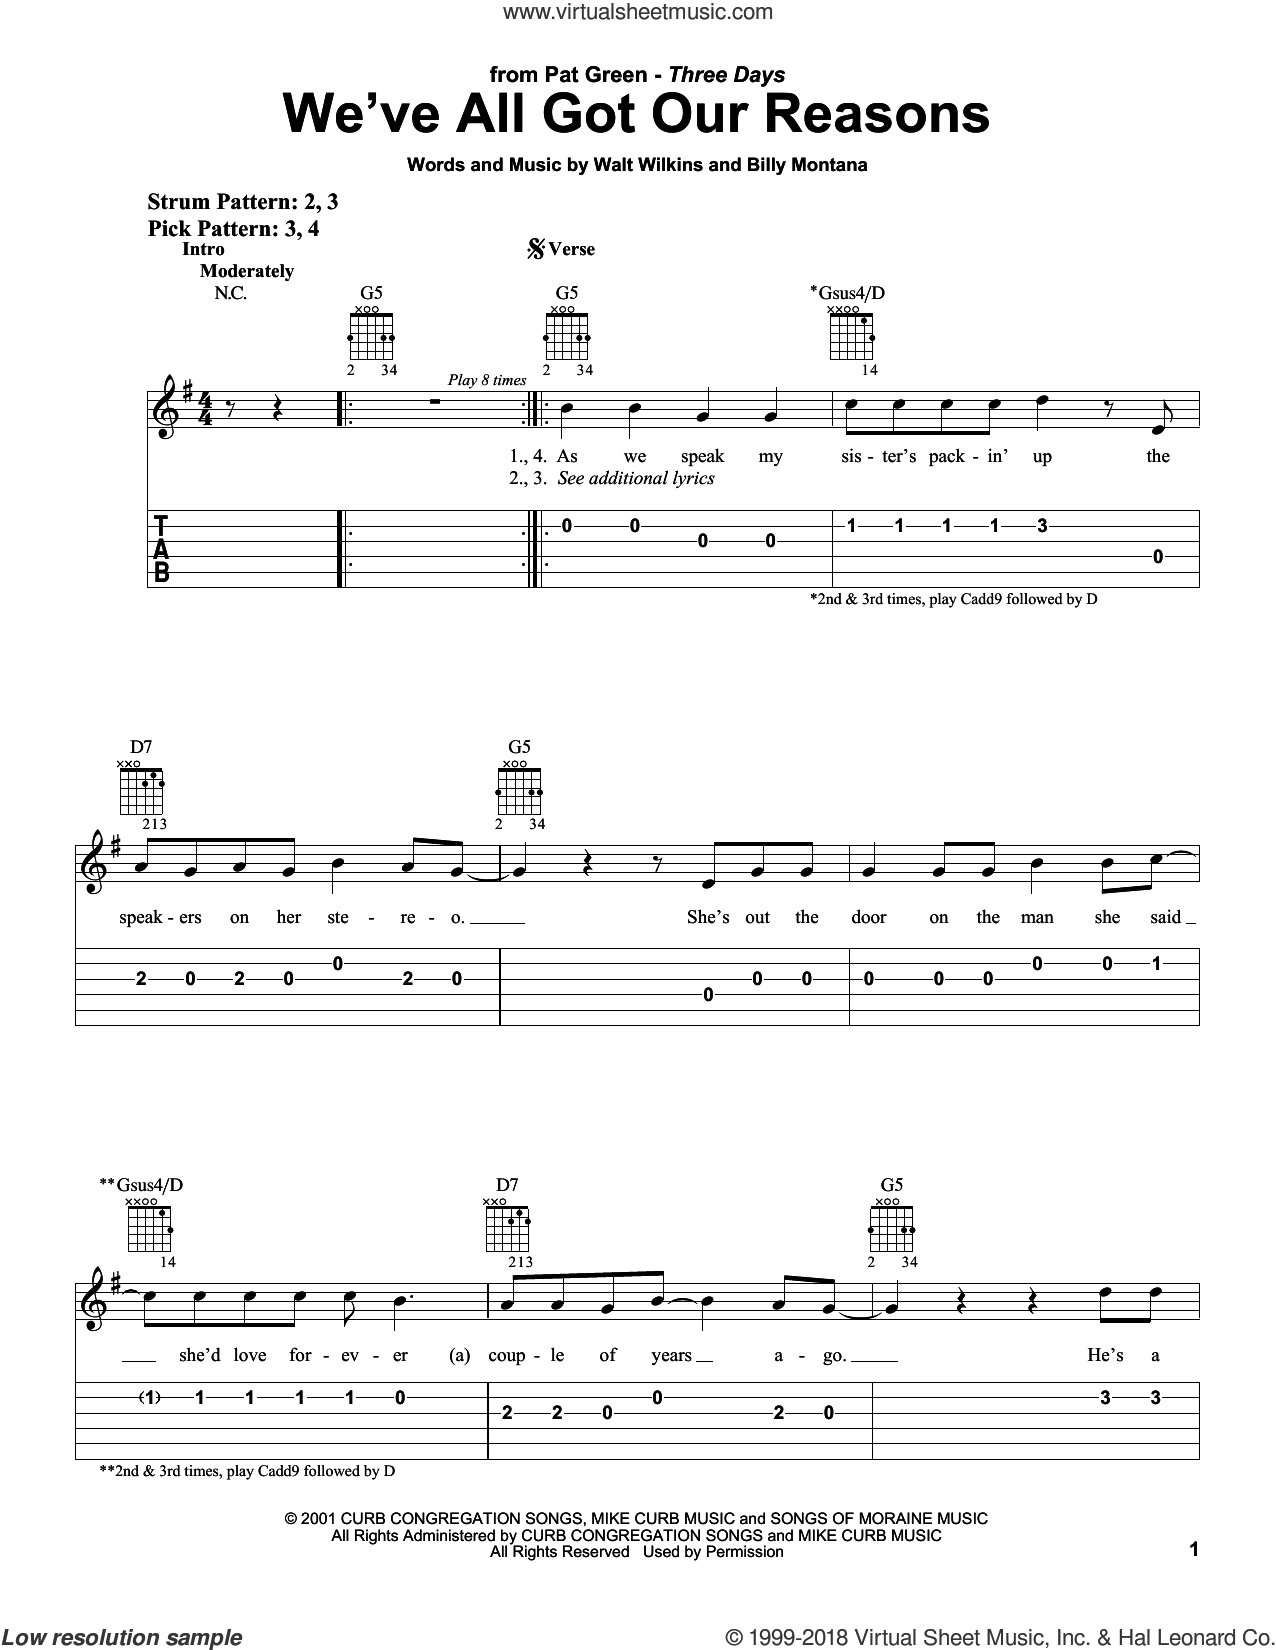 We've All Got Our Reasons sheet music for guitar solo (easy tablature) by Pat Green, Billy Montana and Walt Wilkins, easy guitar (easy tablature)